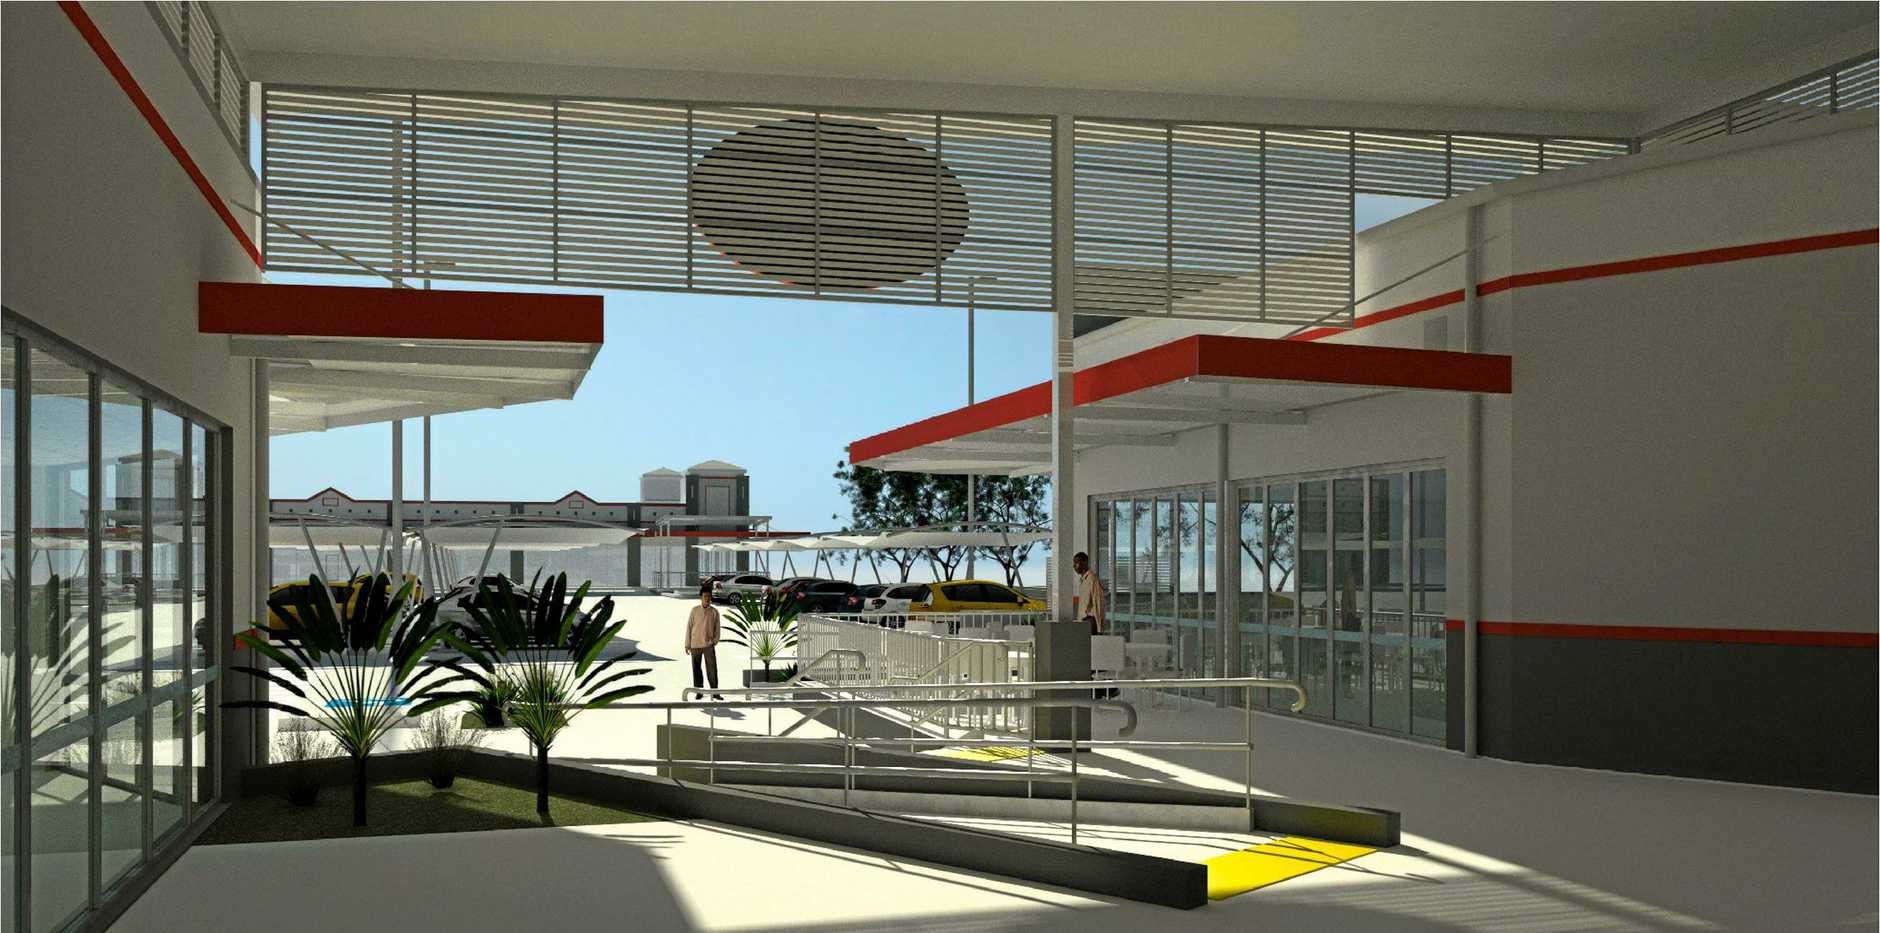 The fresh new modern look planned for the plaza of the new Kingaroy IGA complex.